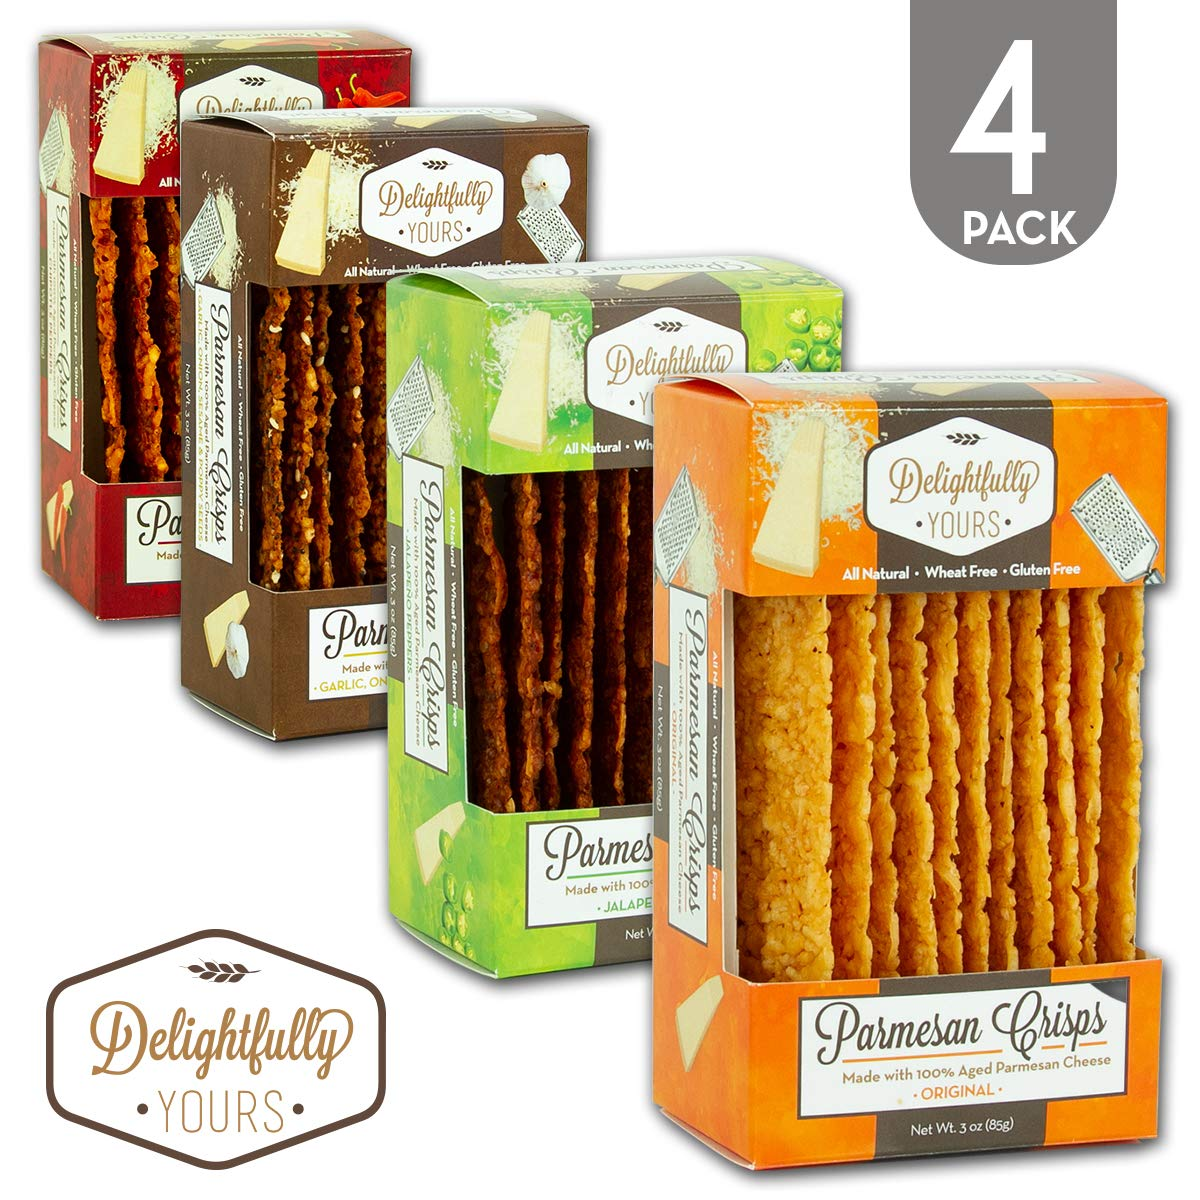 Delightfully Yours: Low Carb Parmesan Cheese Crisps {VARIETY PACK} 100% aged - Flavorful Handmade - Keto Friendly Snack - All Natural - Wheat Free - Gluten Free - Protein Packed 12 OZ (4 PACK)